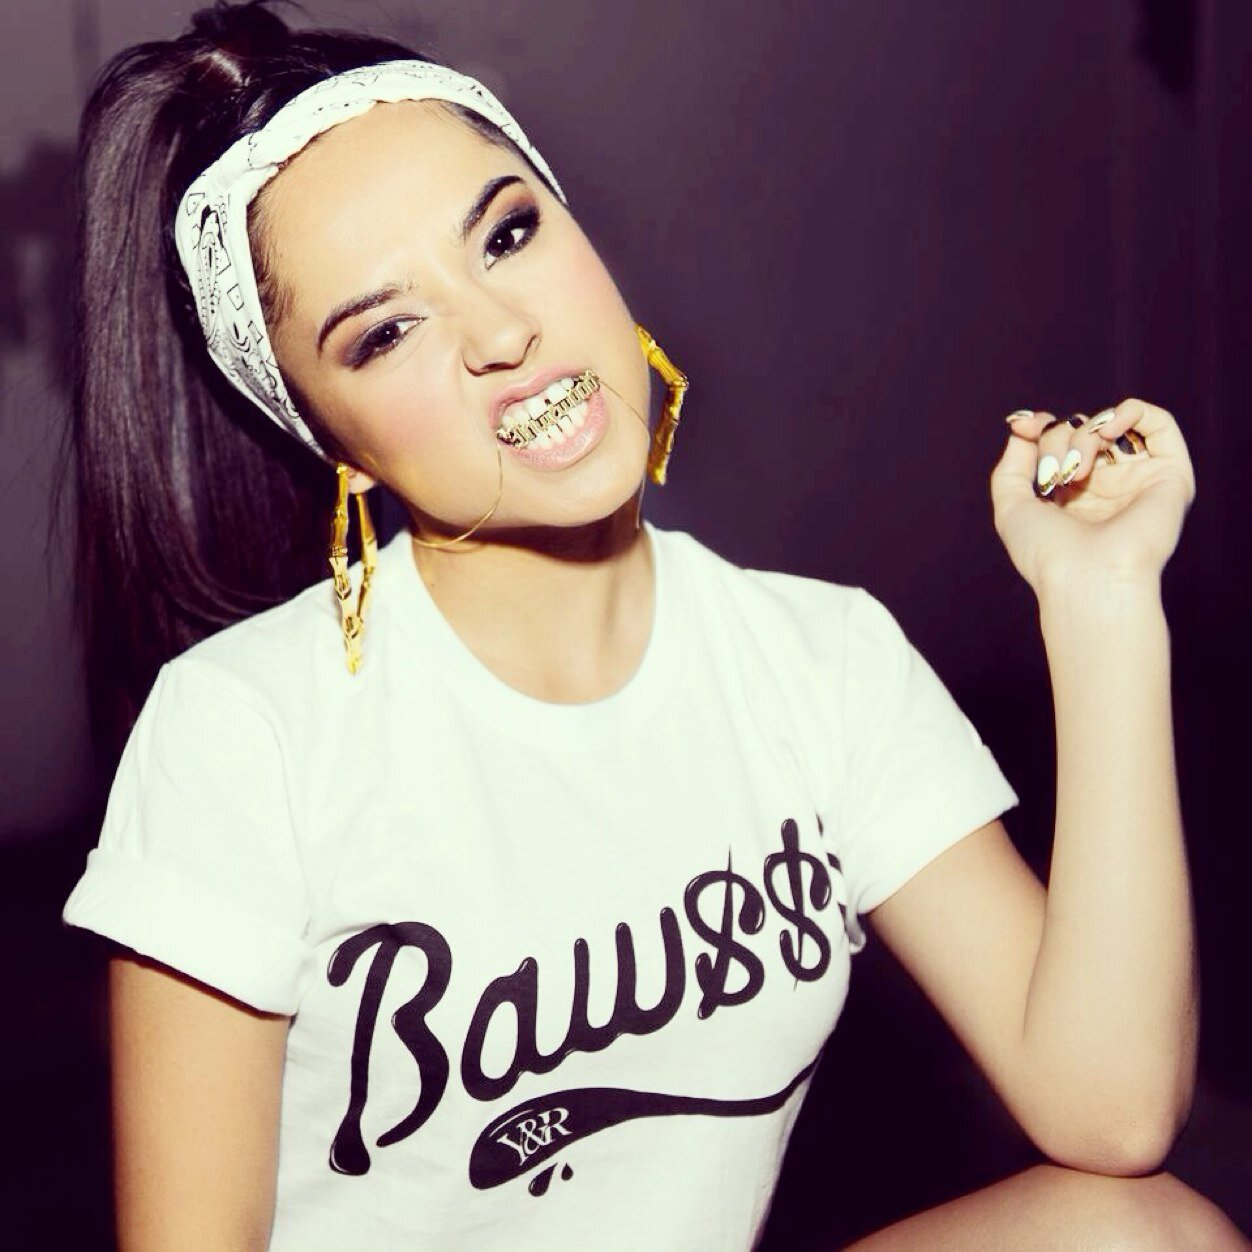 Becky G Becky From The Block Outfits 1abzar com